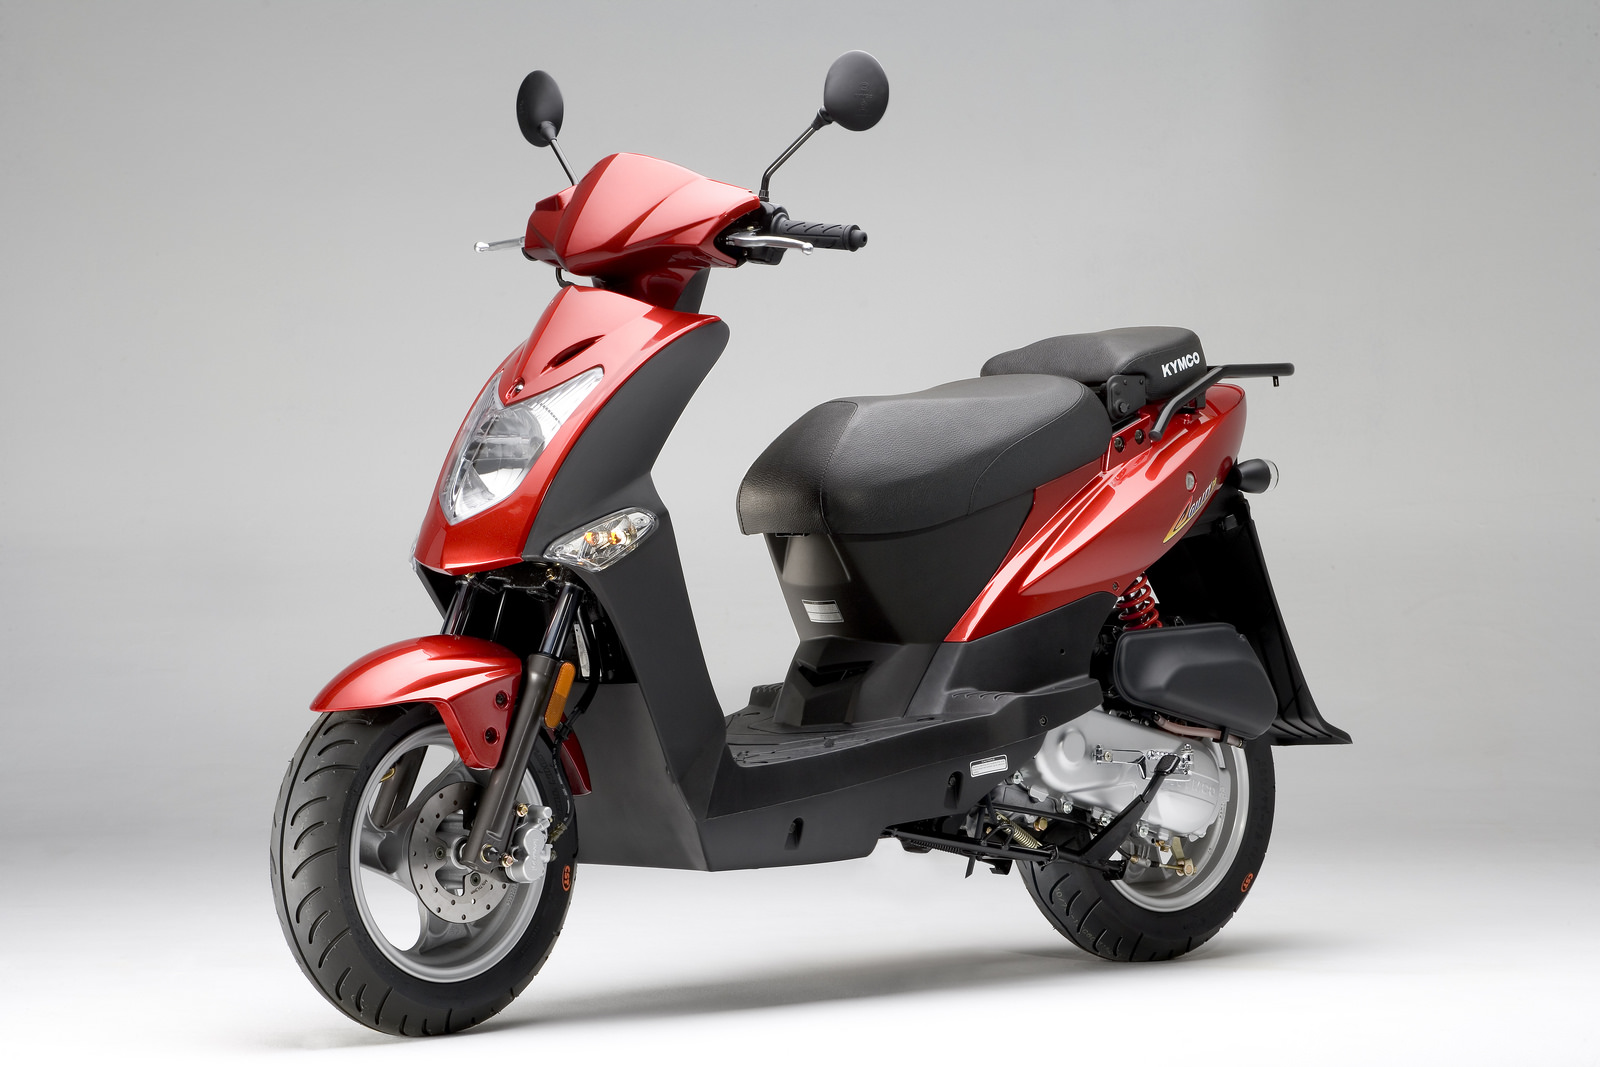 kymco agility 50 all technical data of the model agility 50 from kymco. Black Bedroom Furniture Sets. Home Design Ideas